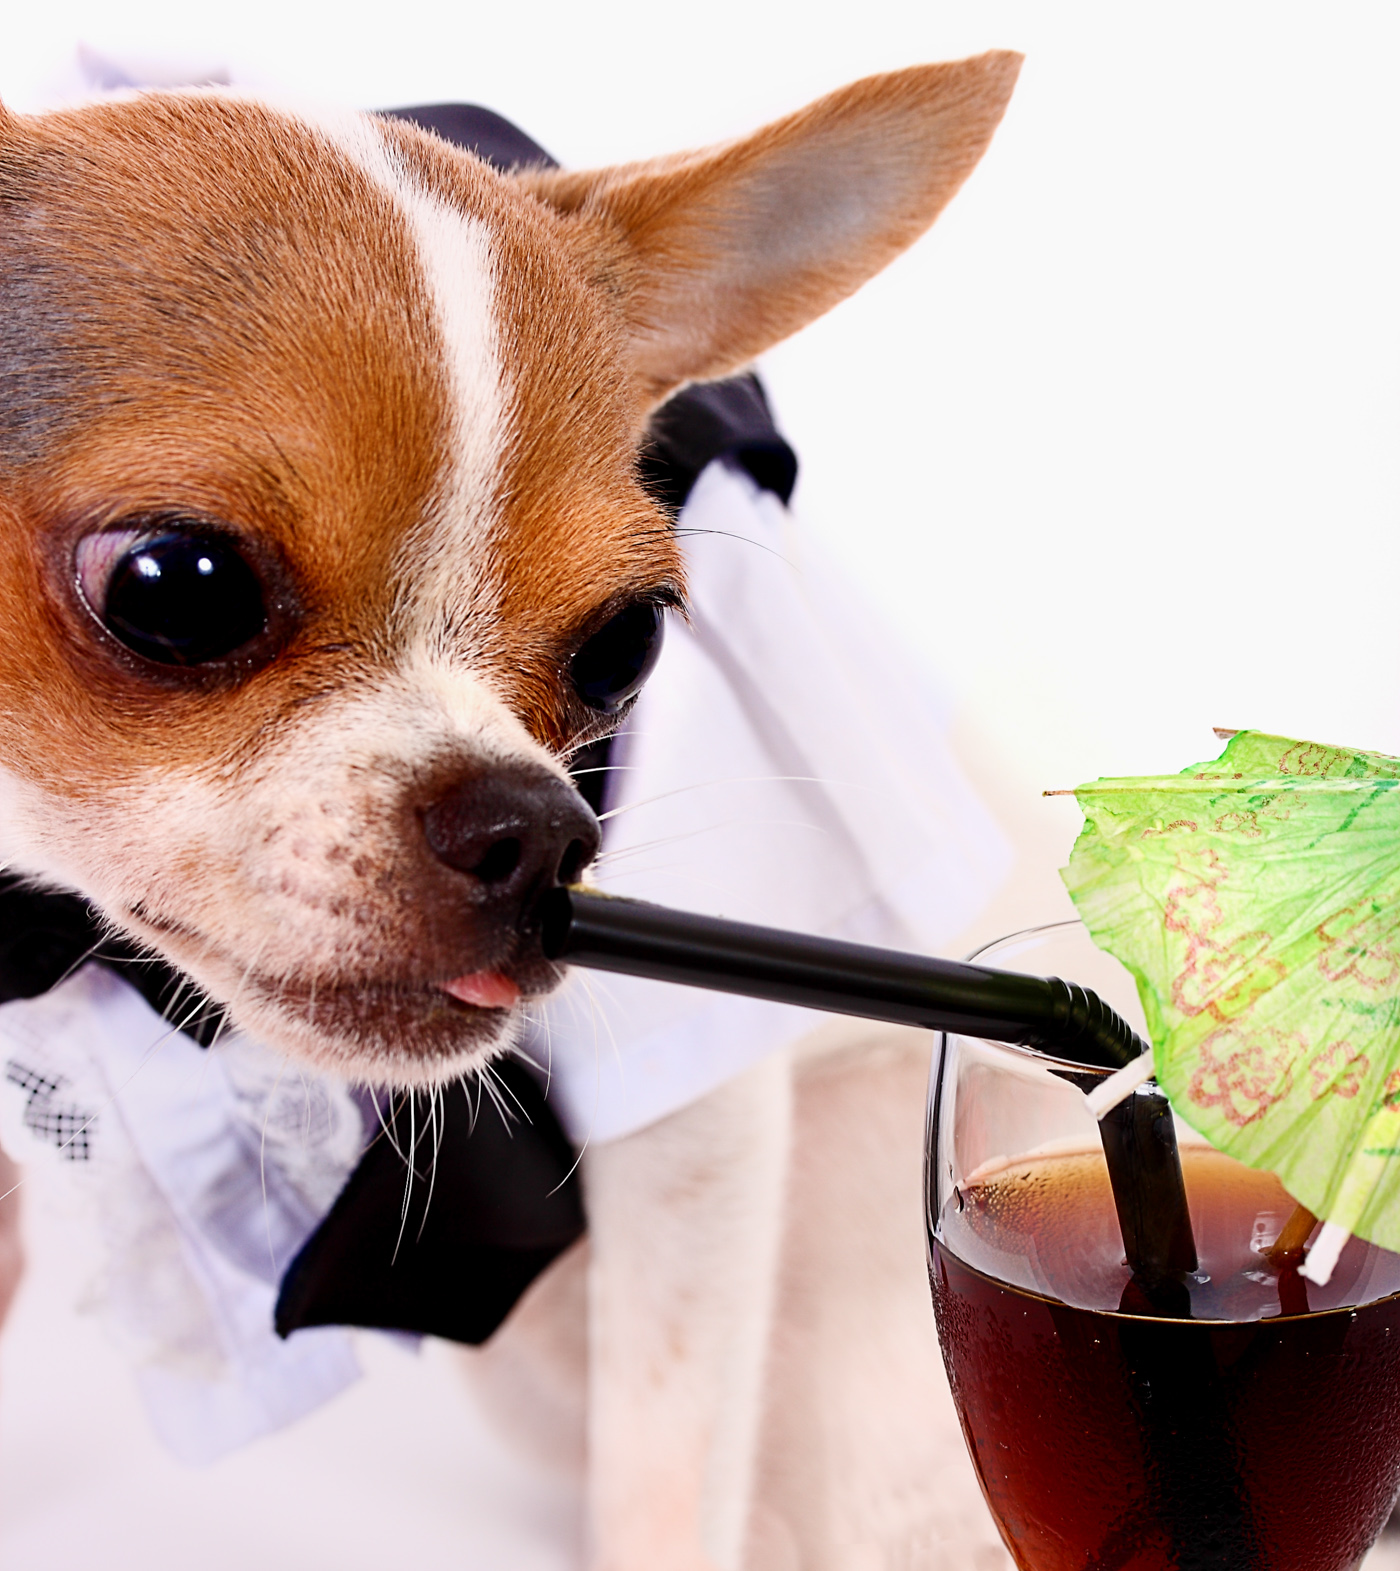 High Class Thirsty Chihuahua Having A Drink, Adorable, Glass, Sucking, Straw, HQ Photo